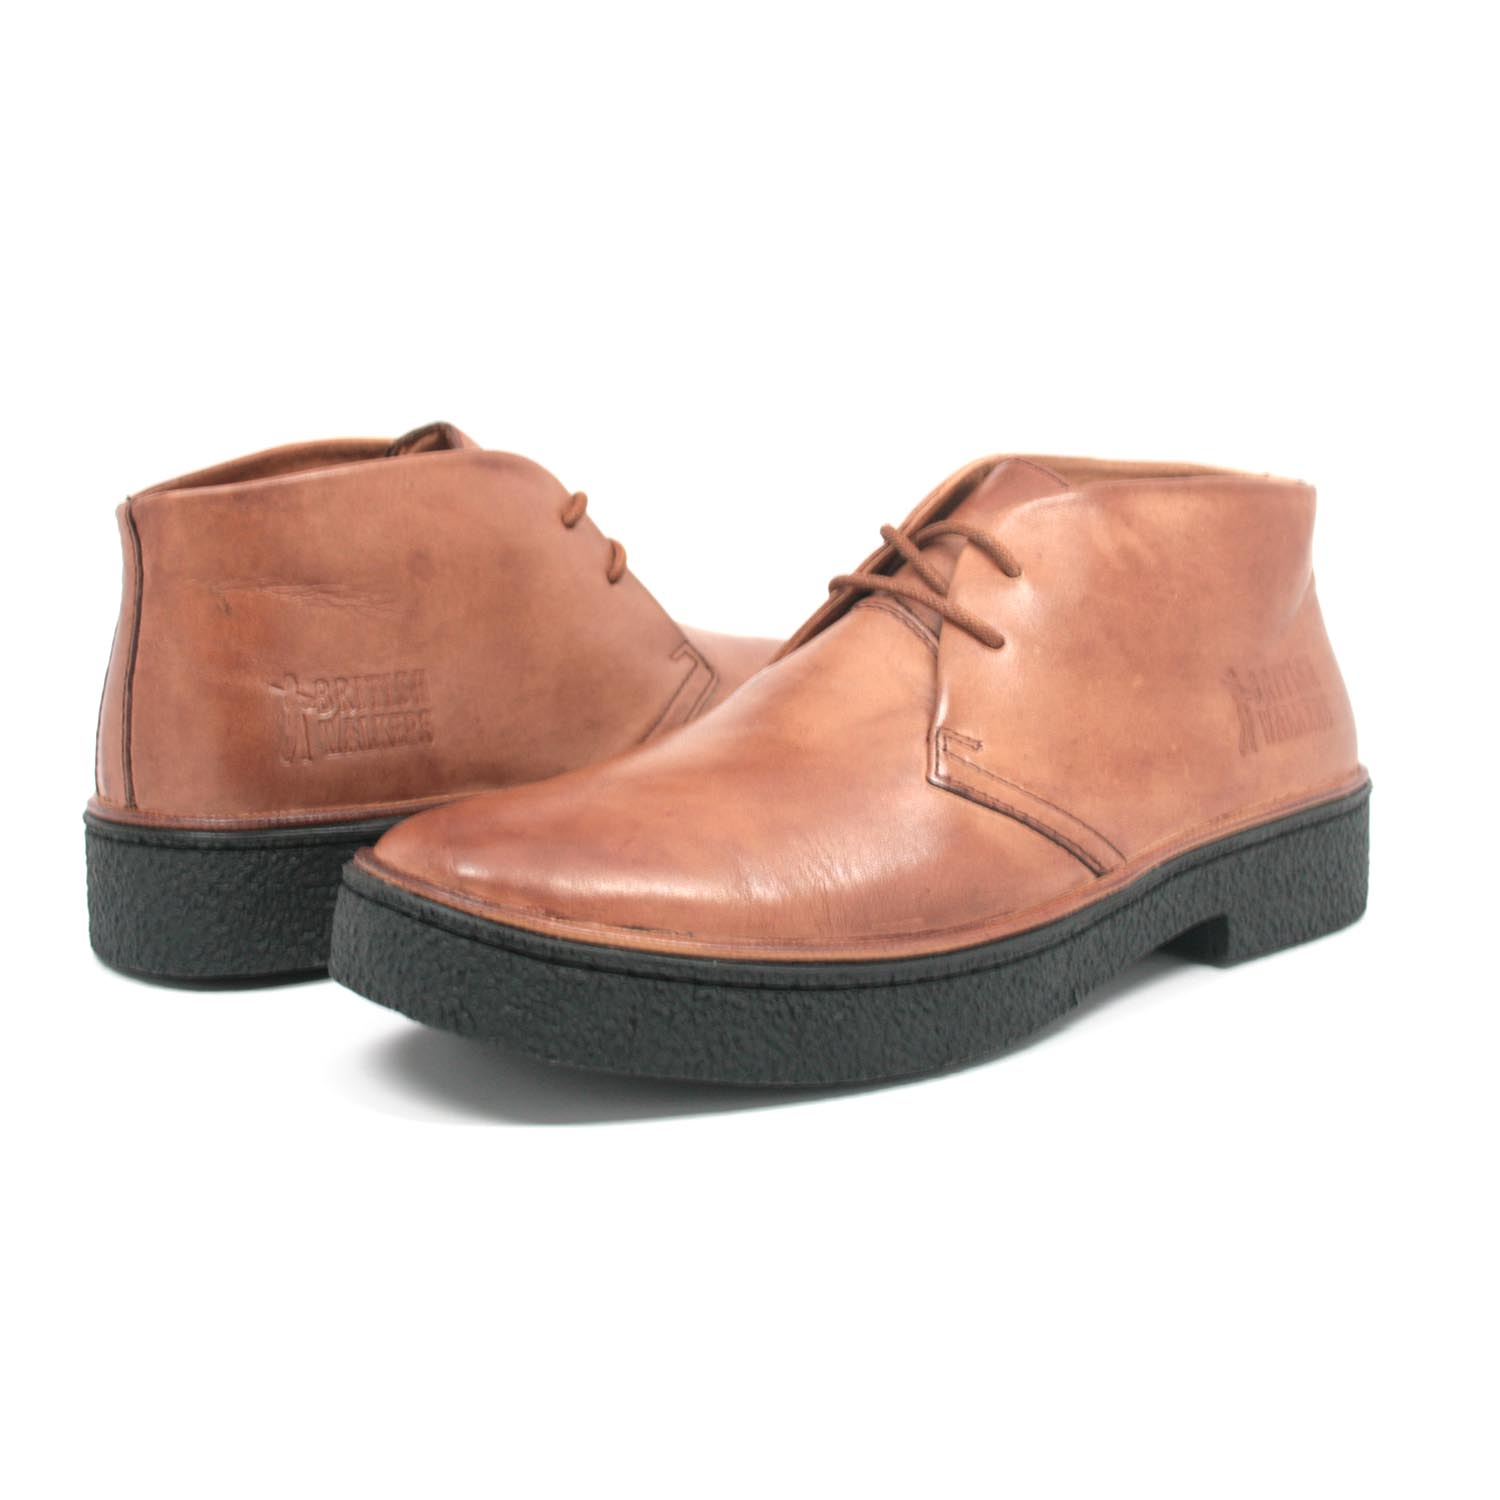 British Walkers Men's Playboy Chukka Boot Light Brown Leather ...